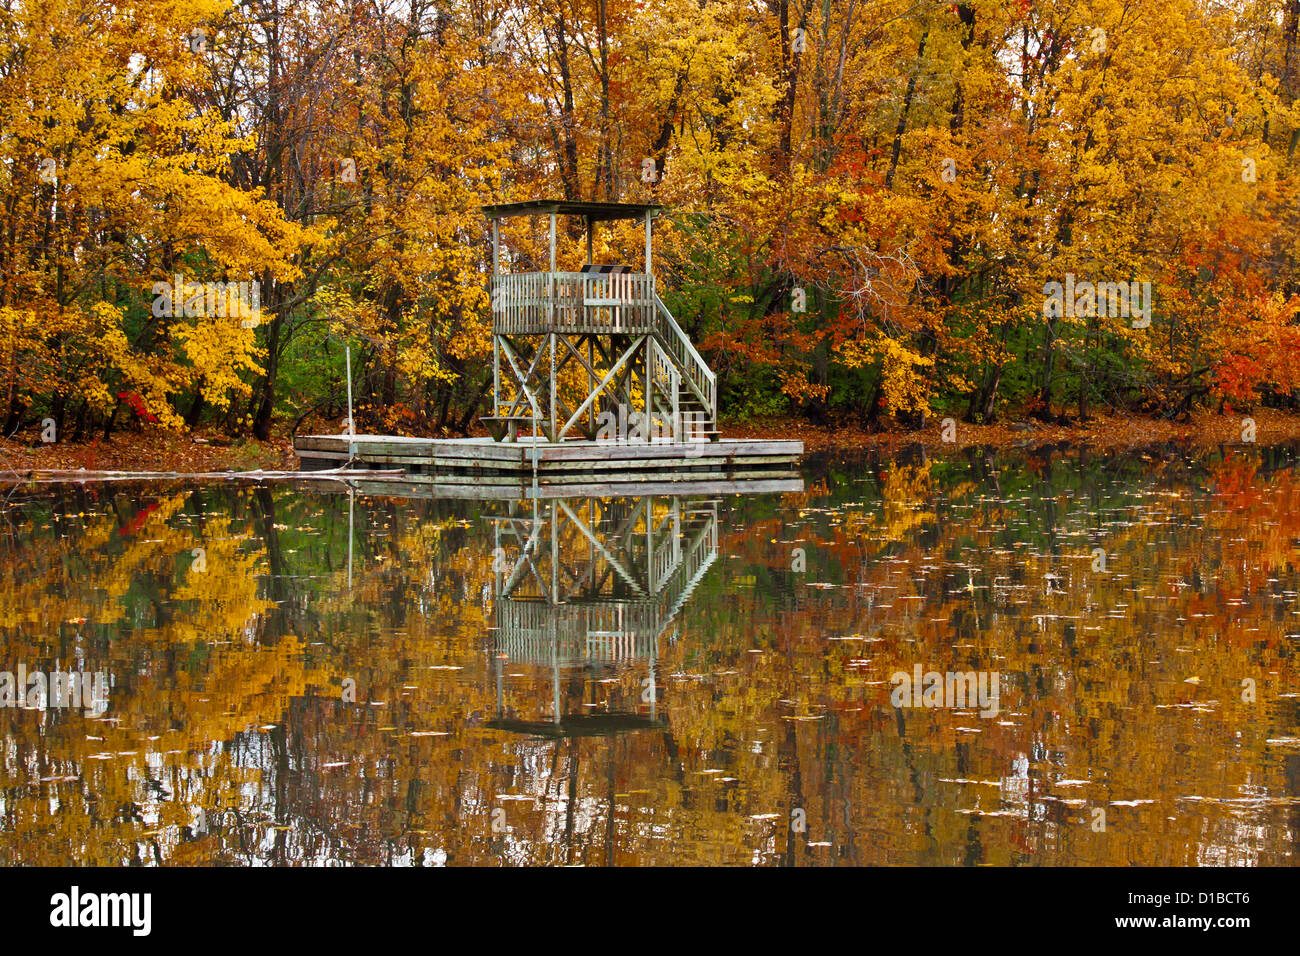 Fall full of colors forest with reflections in the mirror of the water and floating wood tower Stock Photo